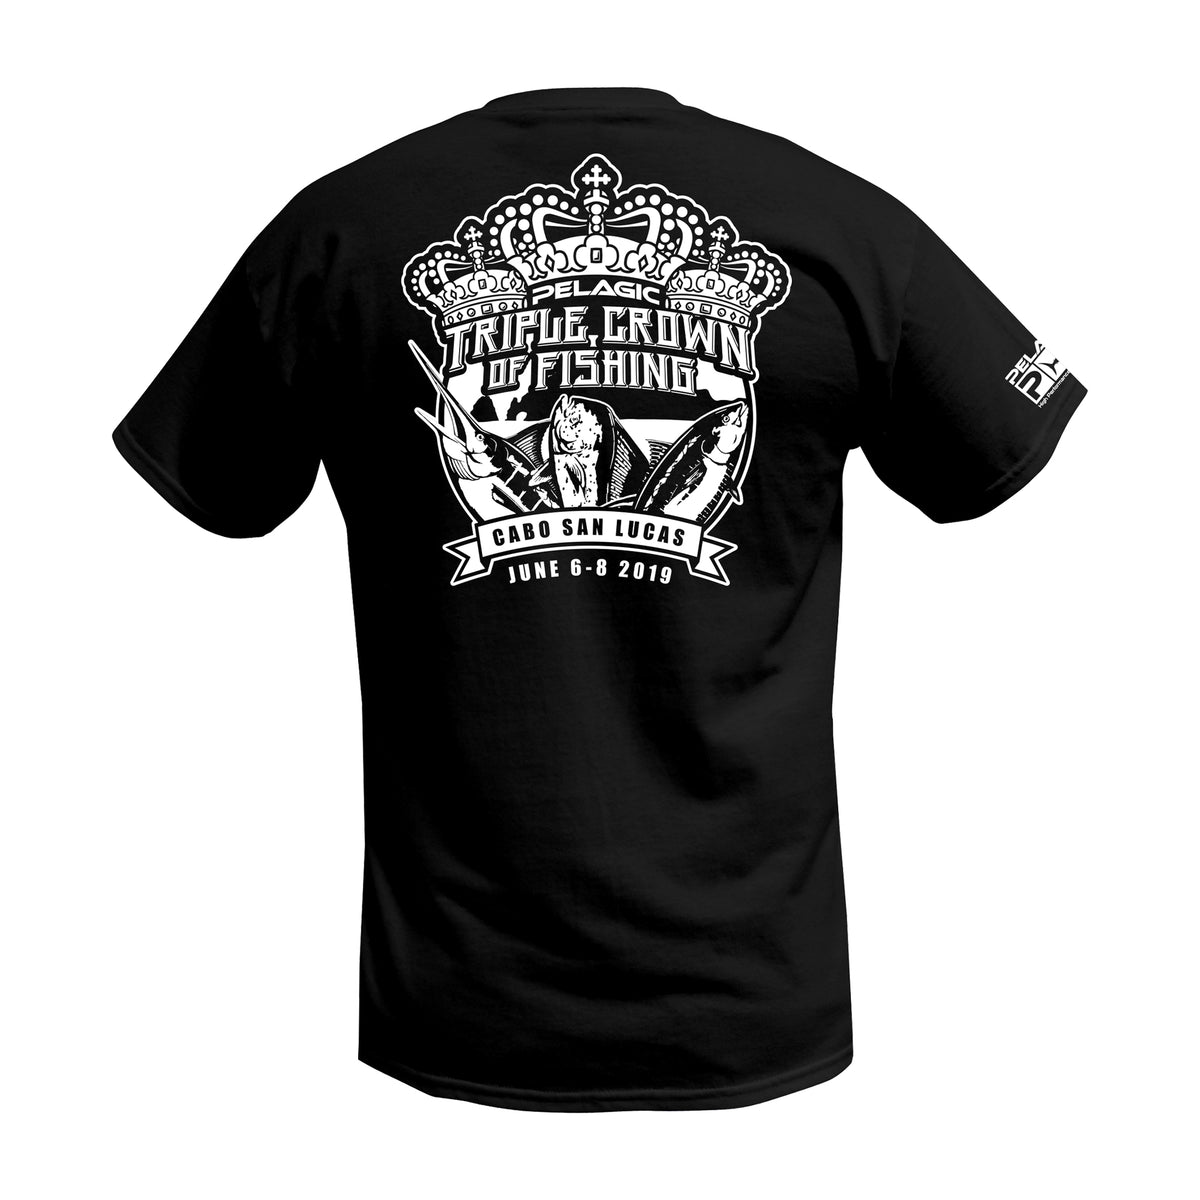 Limited Edition - 2019 Triple Crown Fishing T-shirt Big Image - 1